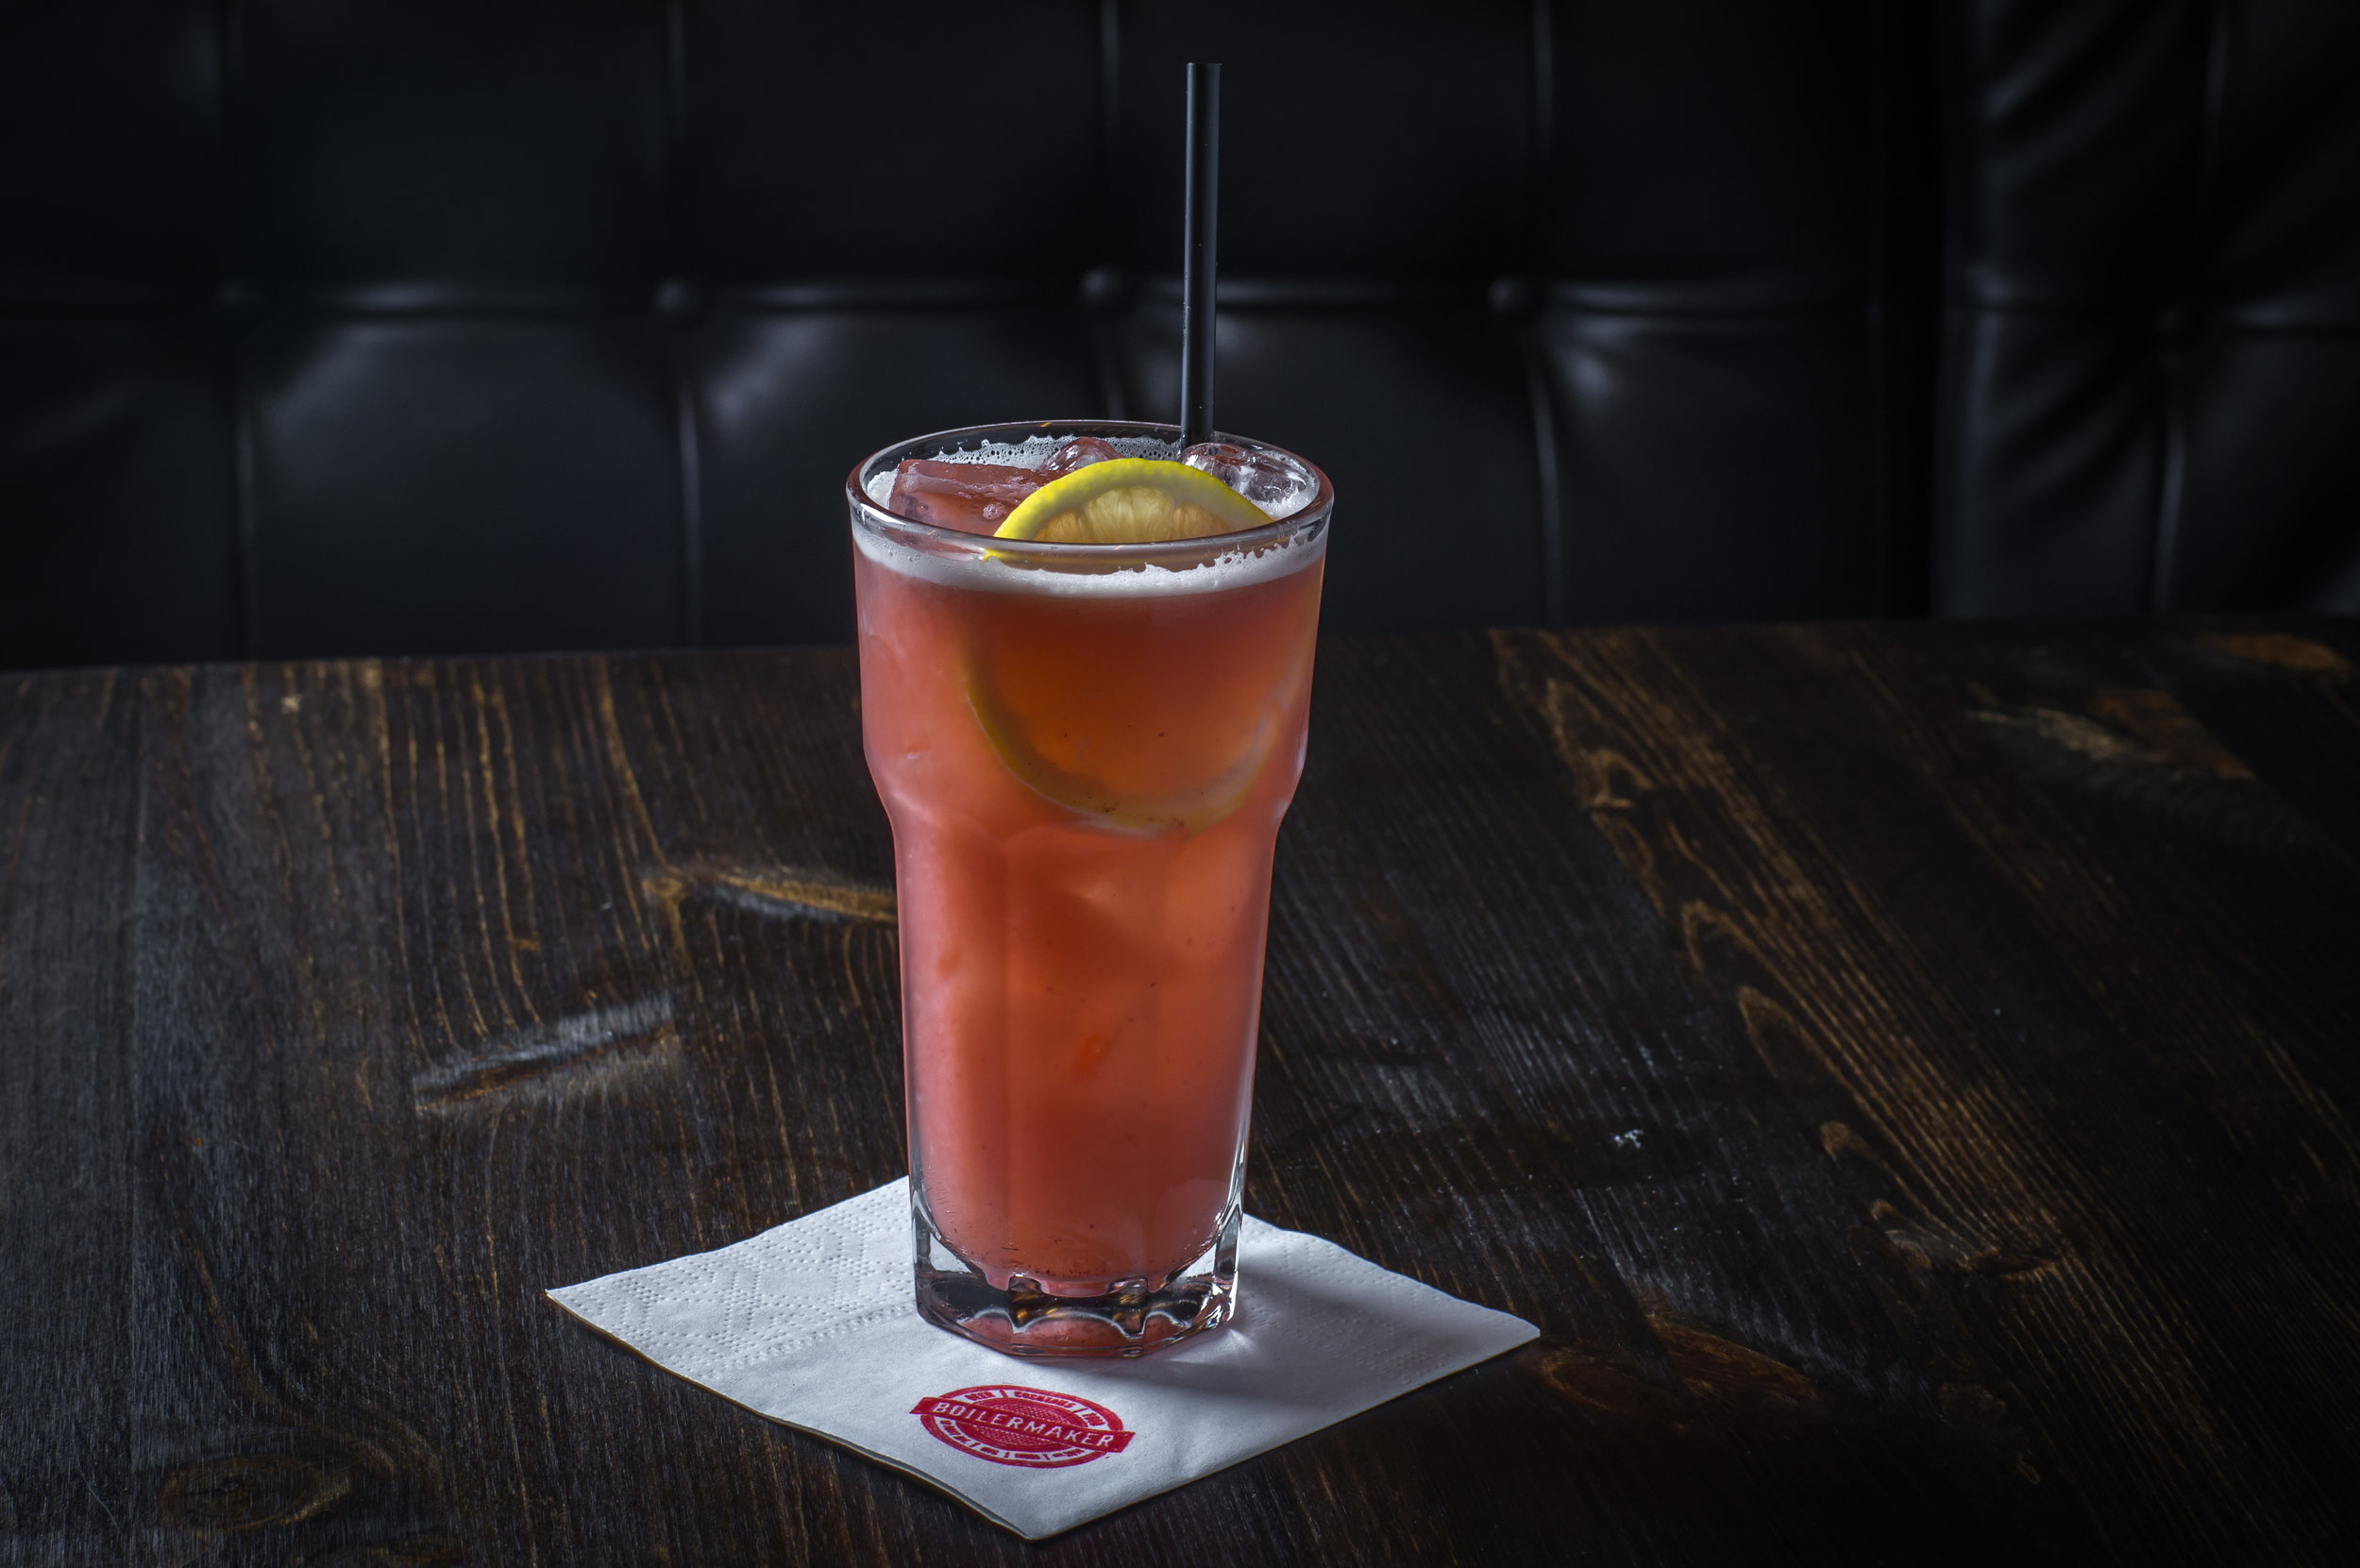 BOILERMAKER_0922_cocktails_Wagtouicz_04.jpg